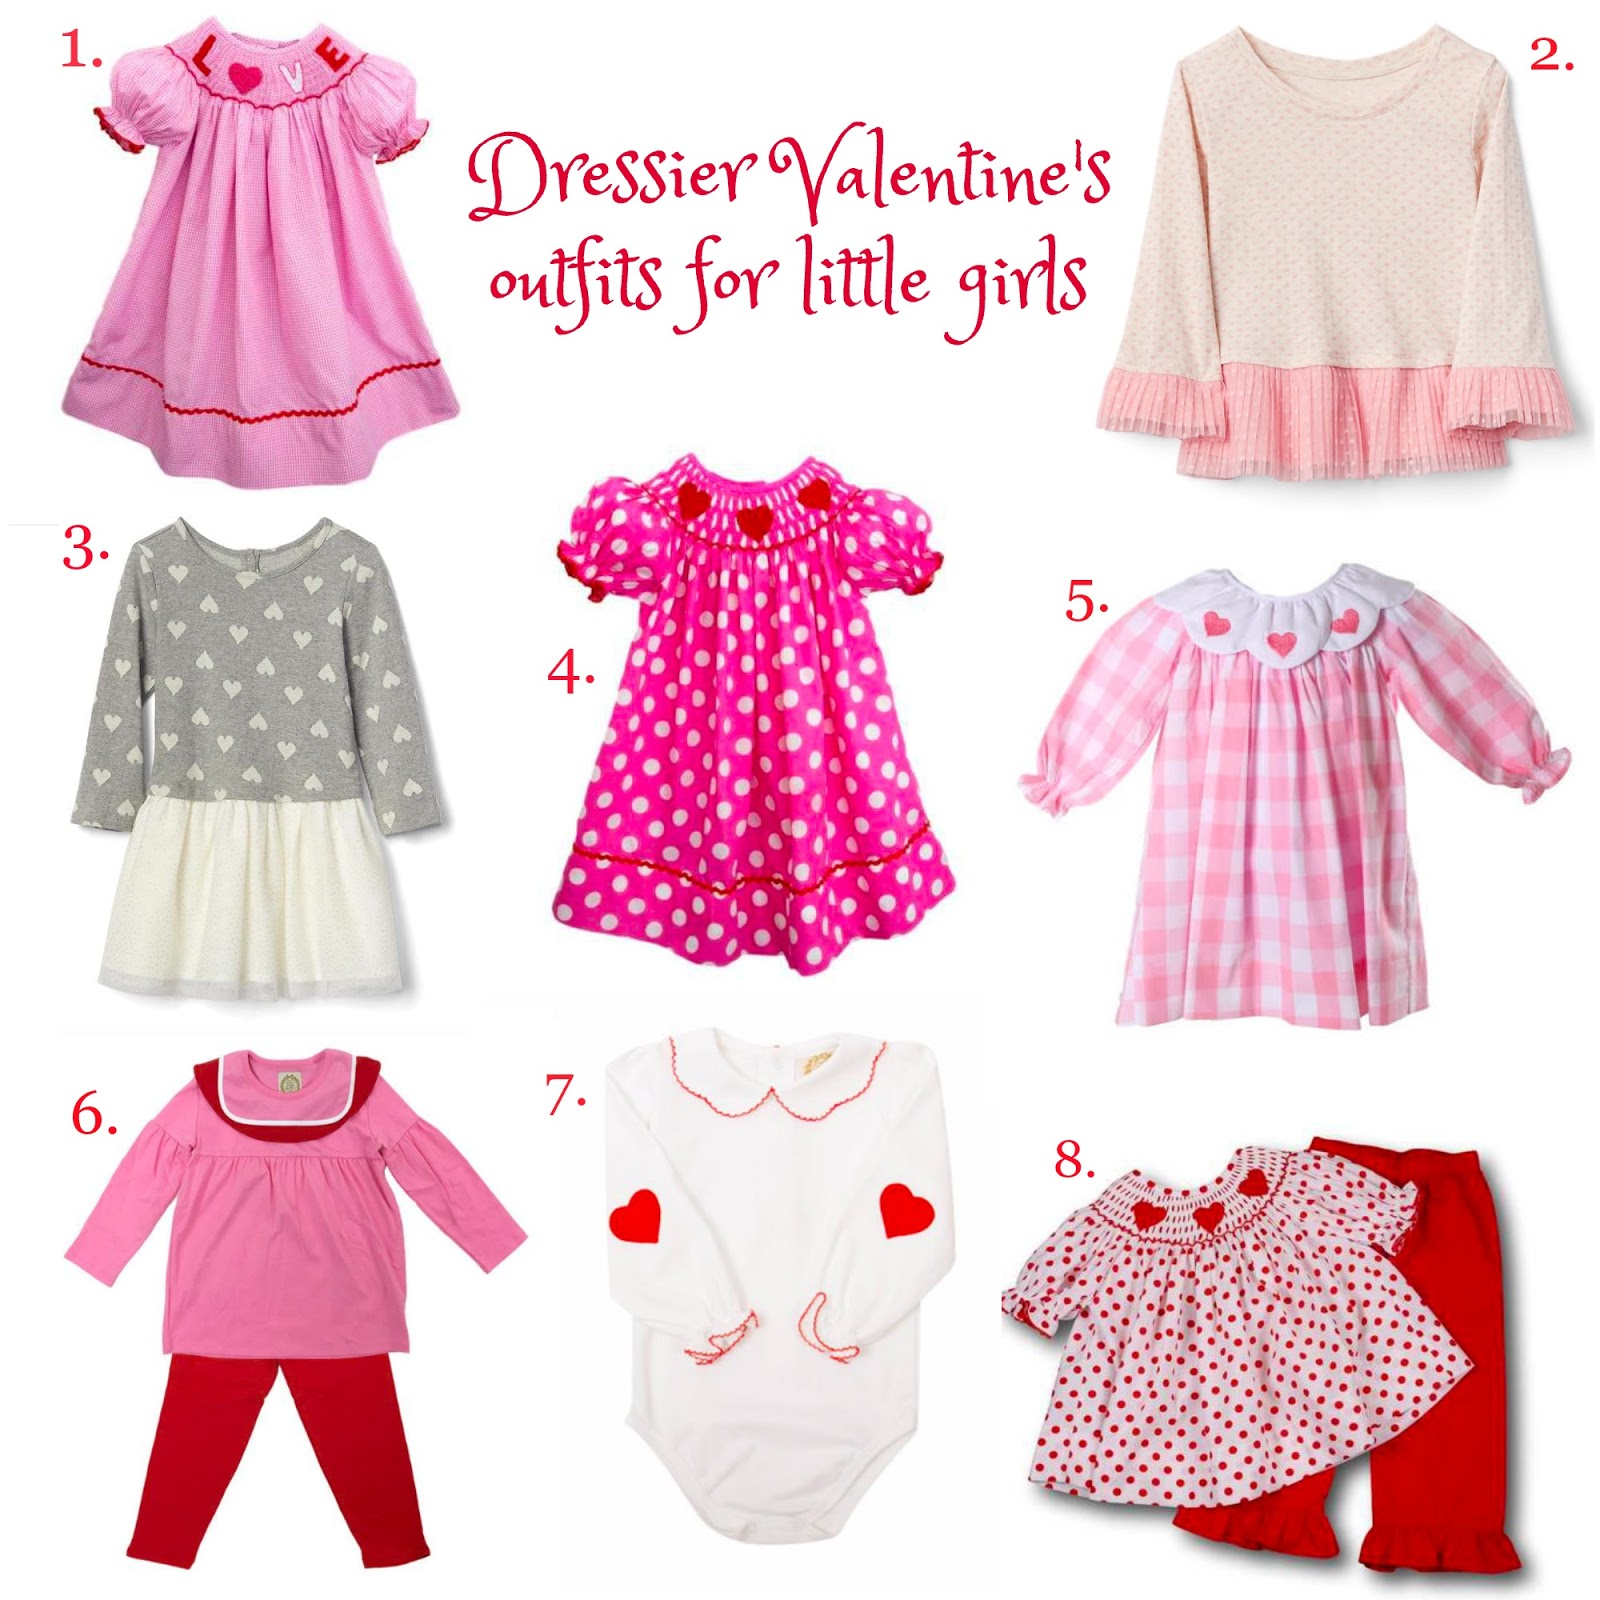 ... I have been eyeing festive outfits to put her in over the next few  weeks. And most of these outfits would be so cute even after Valentine s  Day! bcbc11976